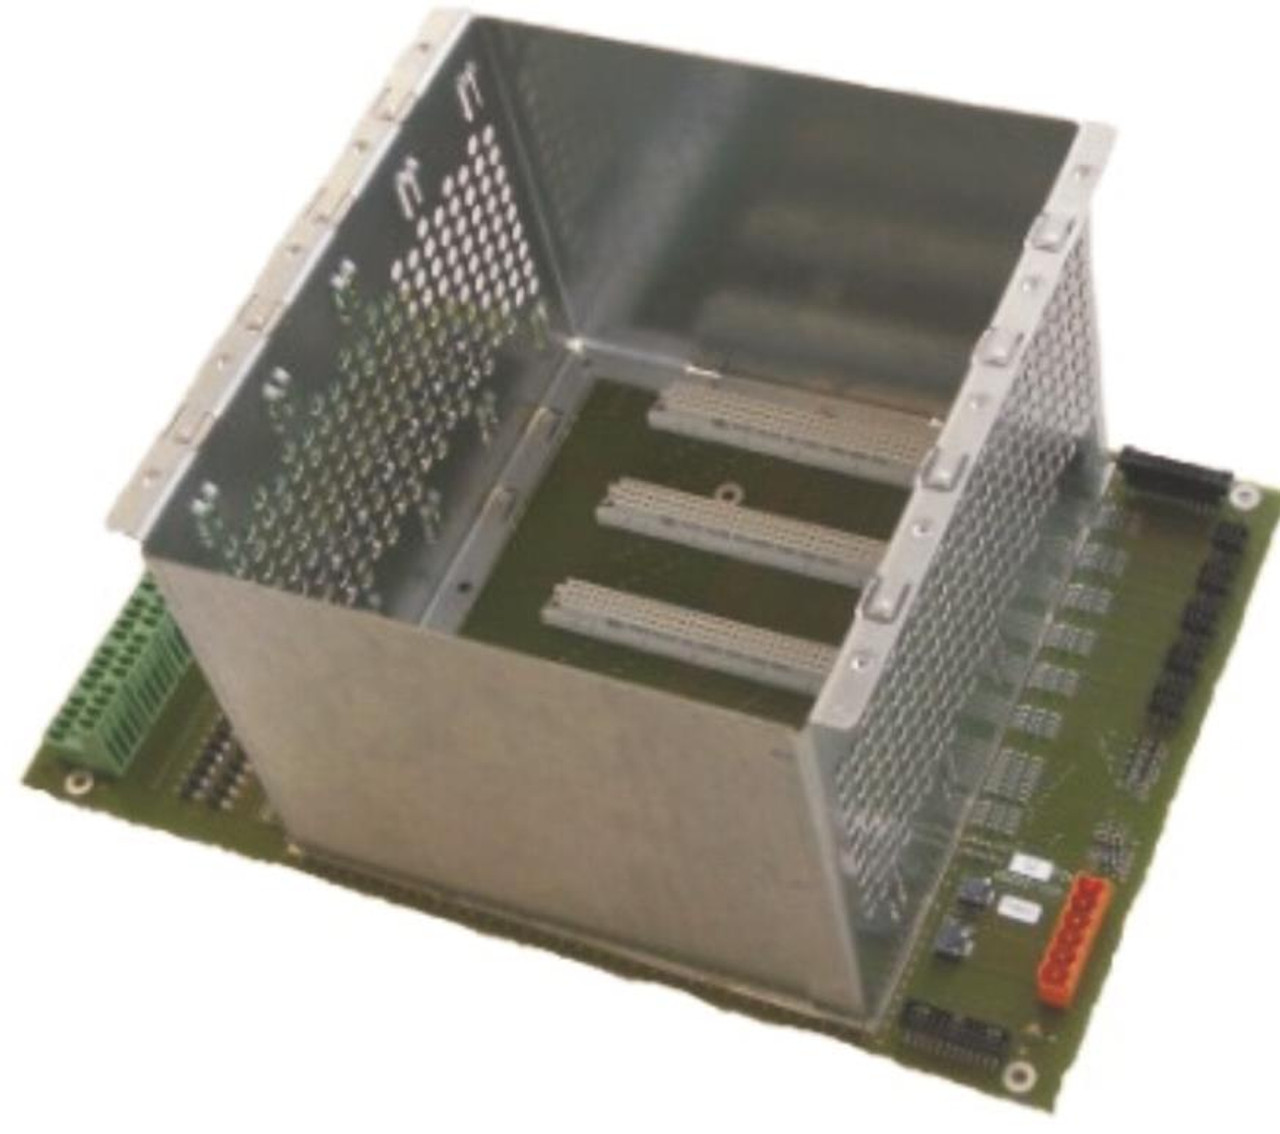 Siemens FCA2008-A1, S54400-B28-A1, Card cage (5 slots)